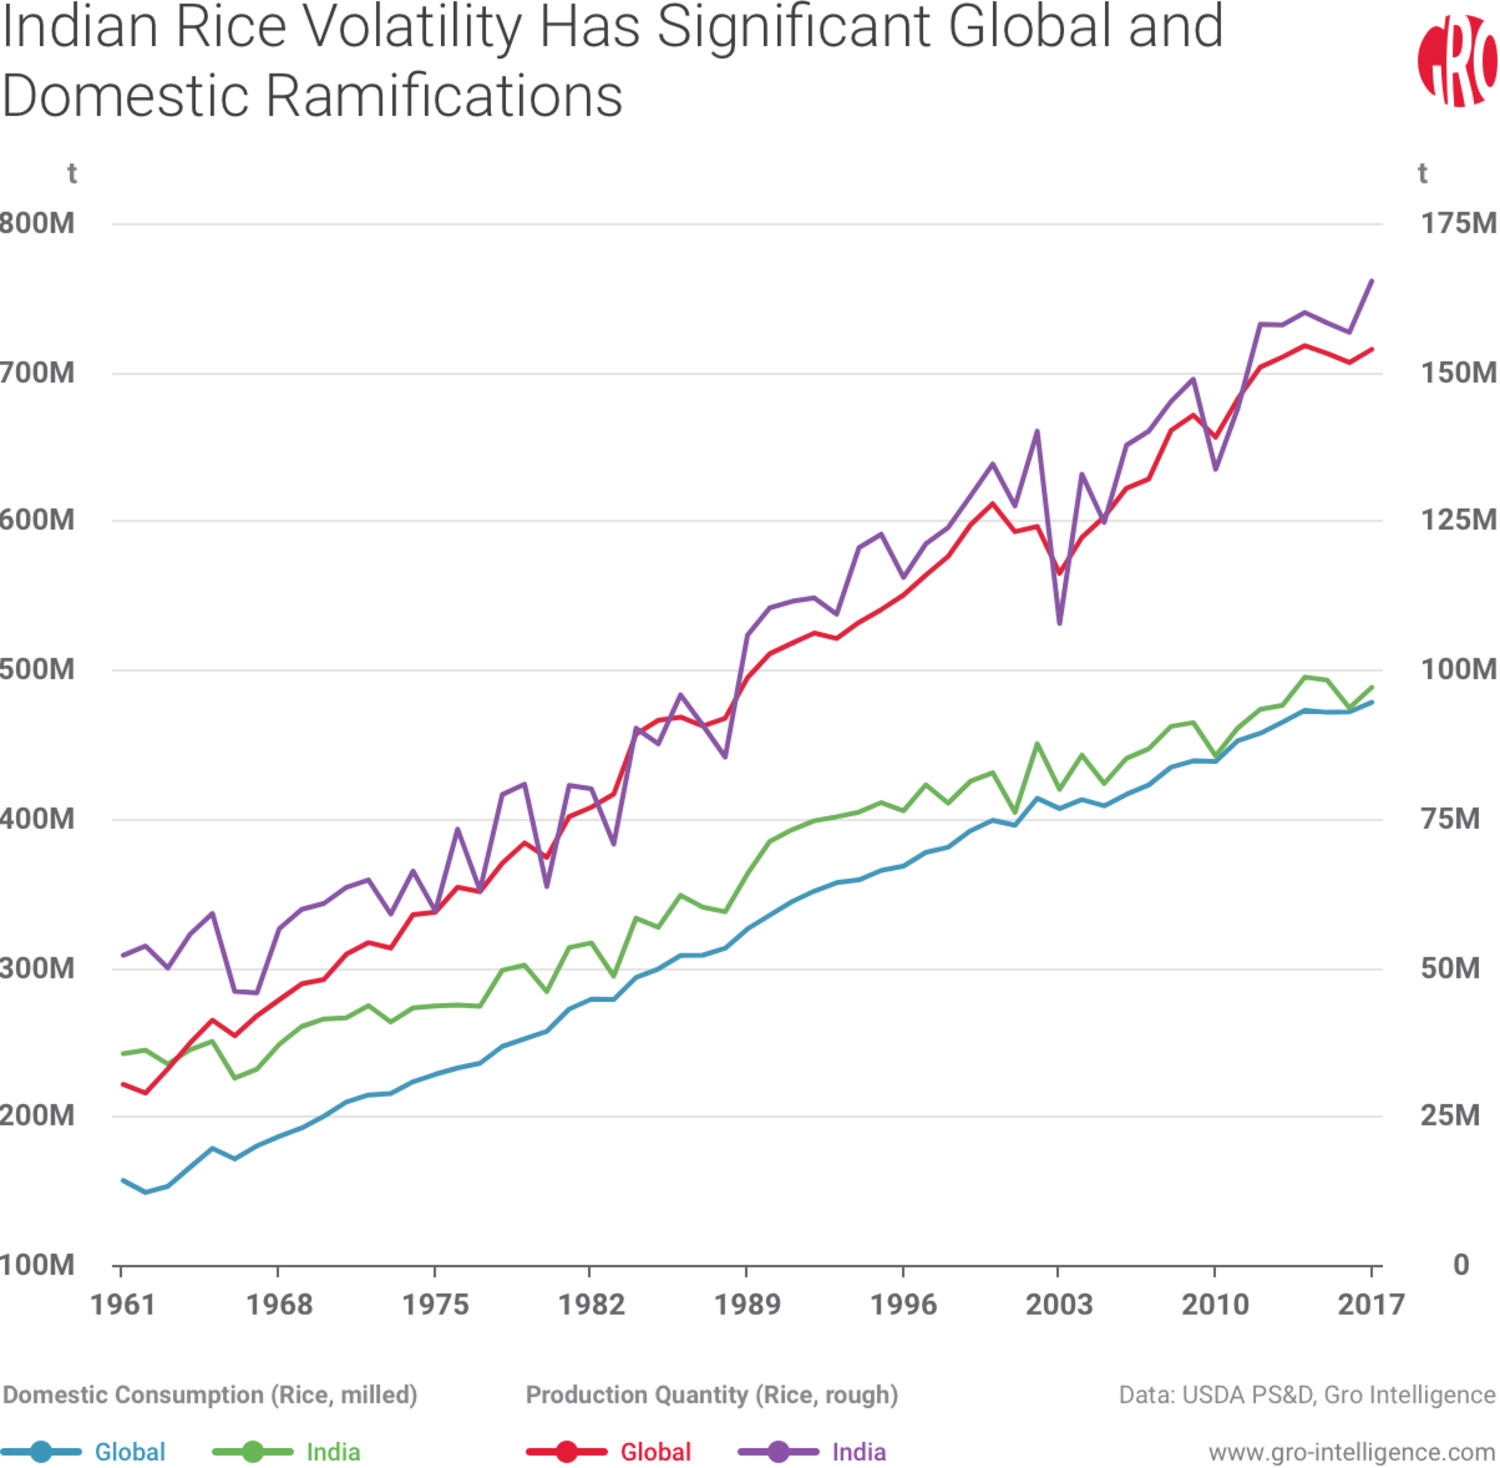 Indian Rice Volatility Has Significant Global and Domestic Ramifications